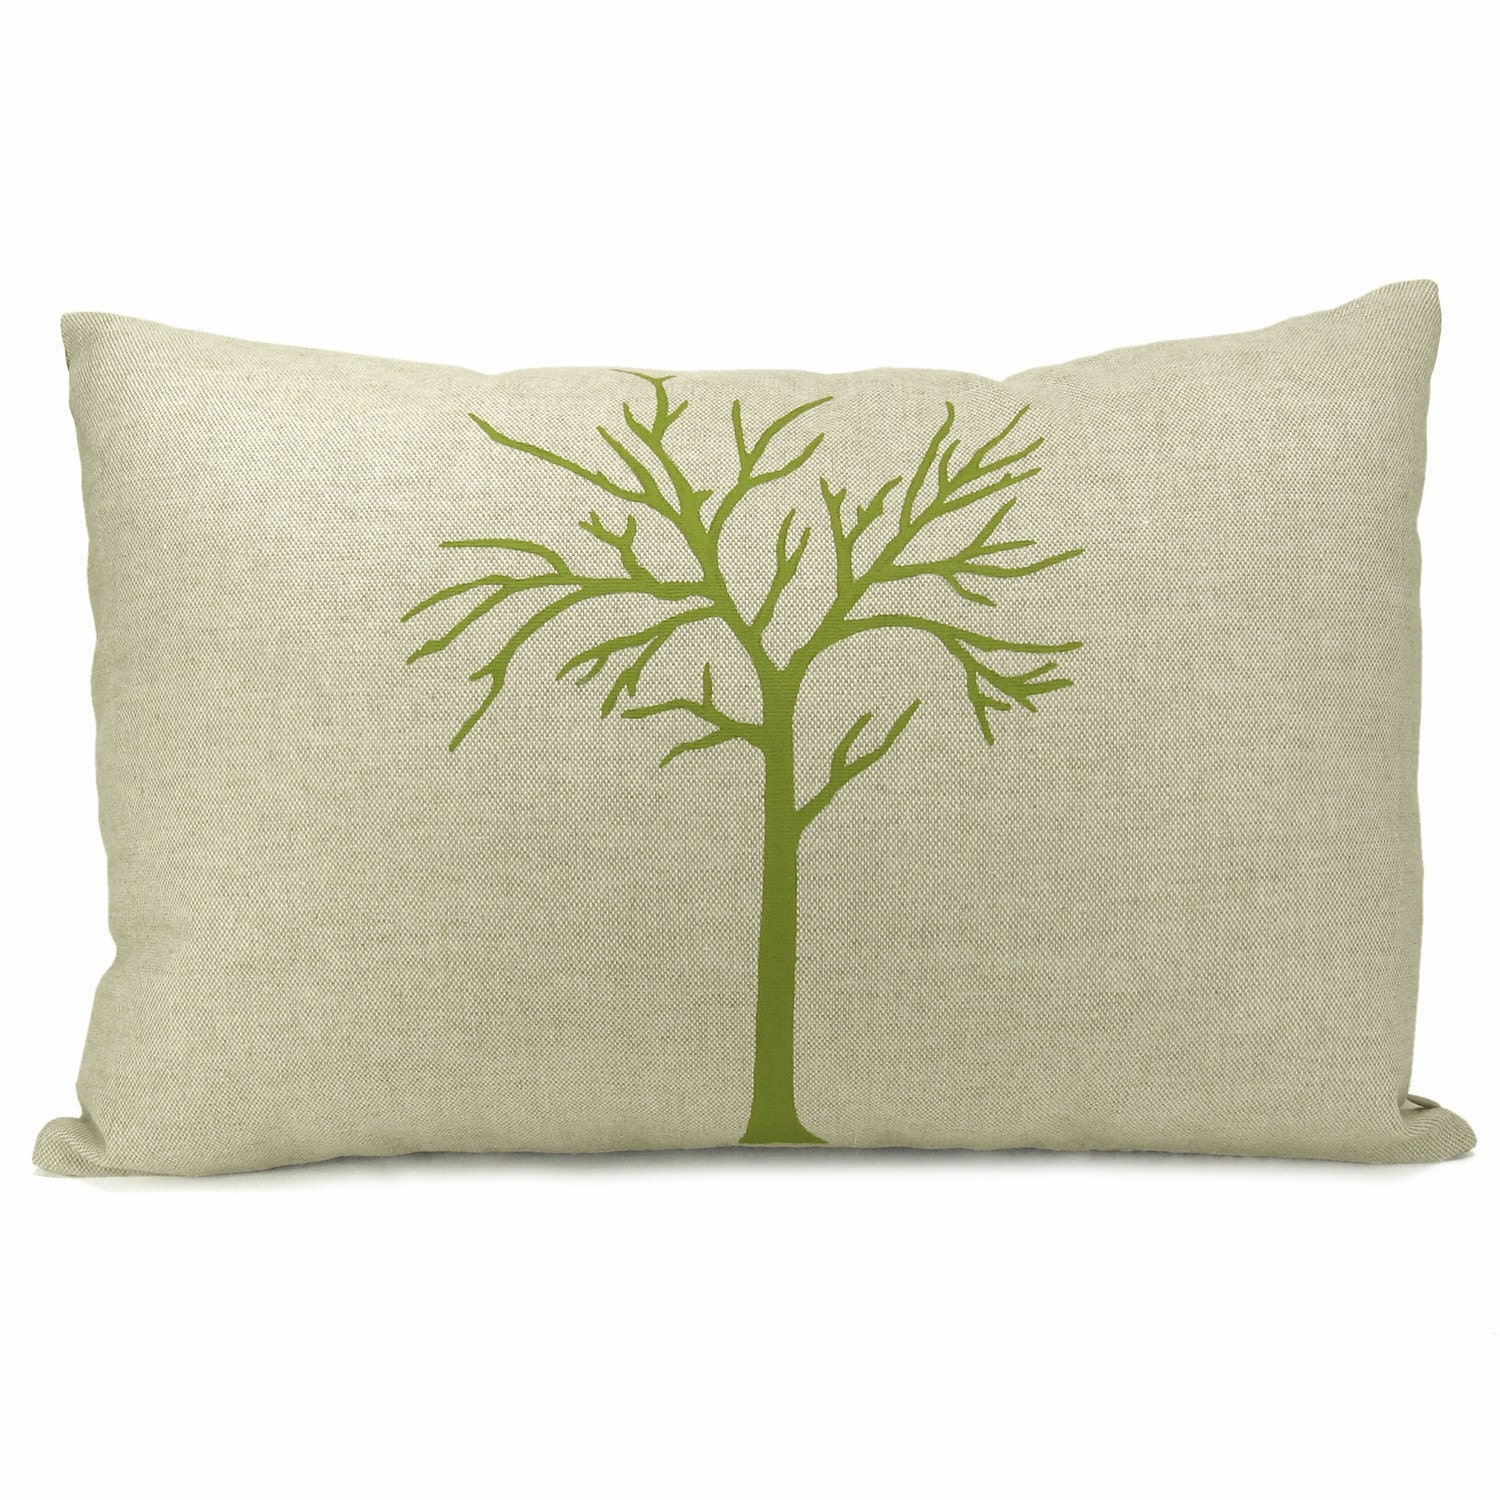 Green Modern Tree on Natural Linen Front And Damask Linen Back Cushion Cover